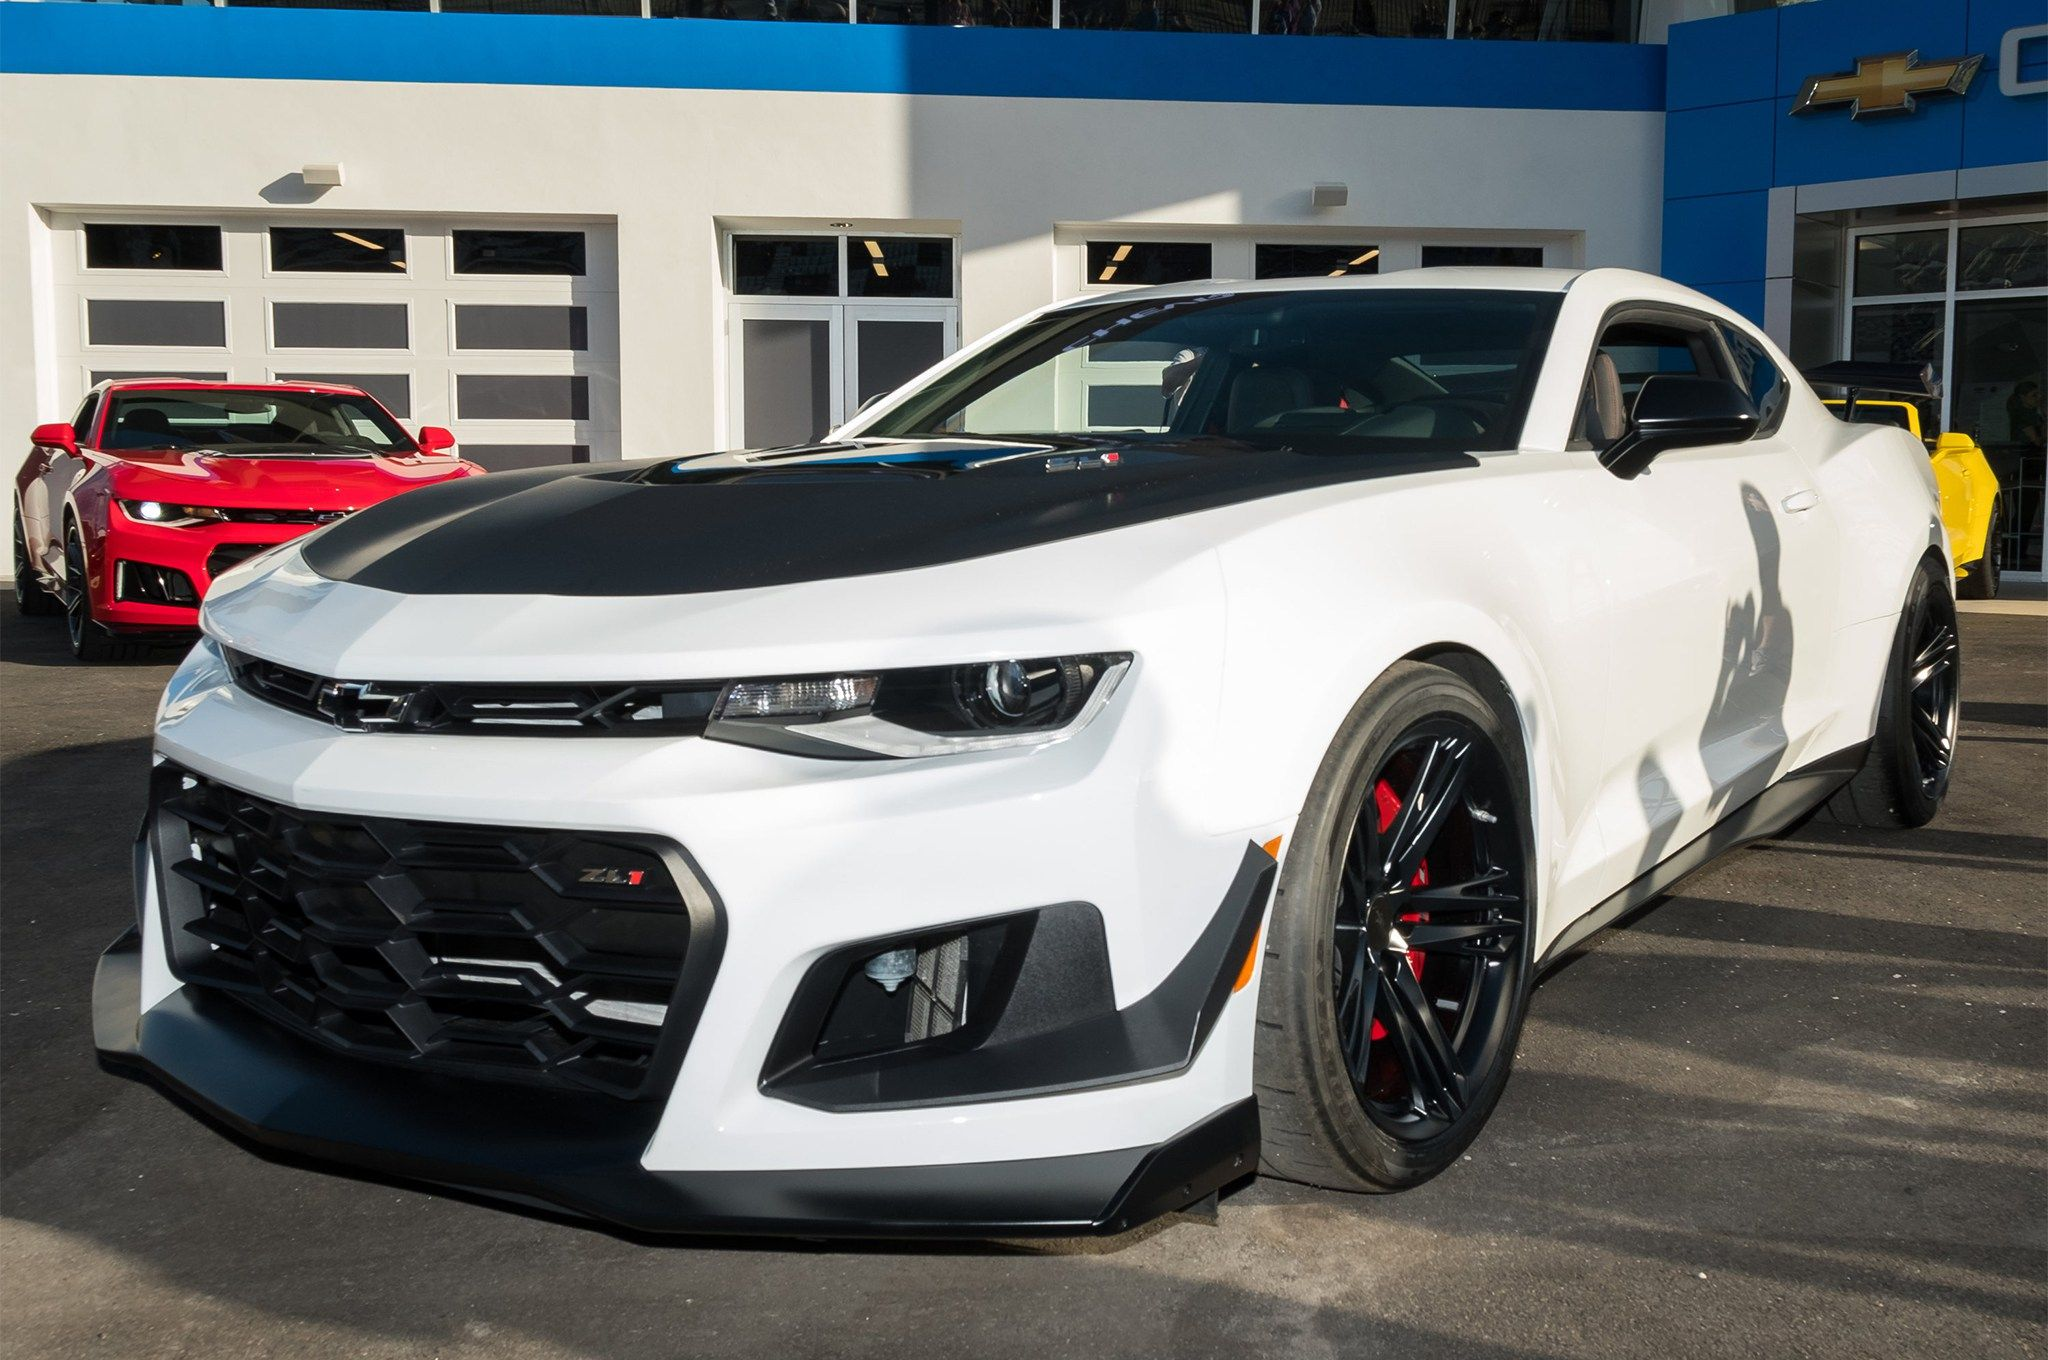 2018 Chevy Camaro Z28 Price Release Date Interior Engine